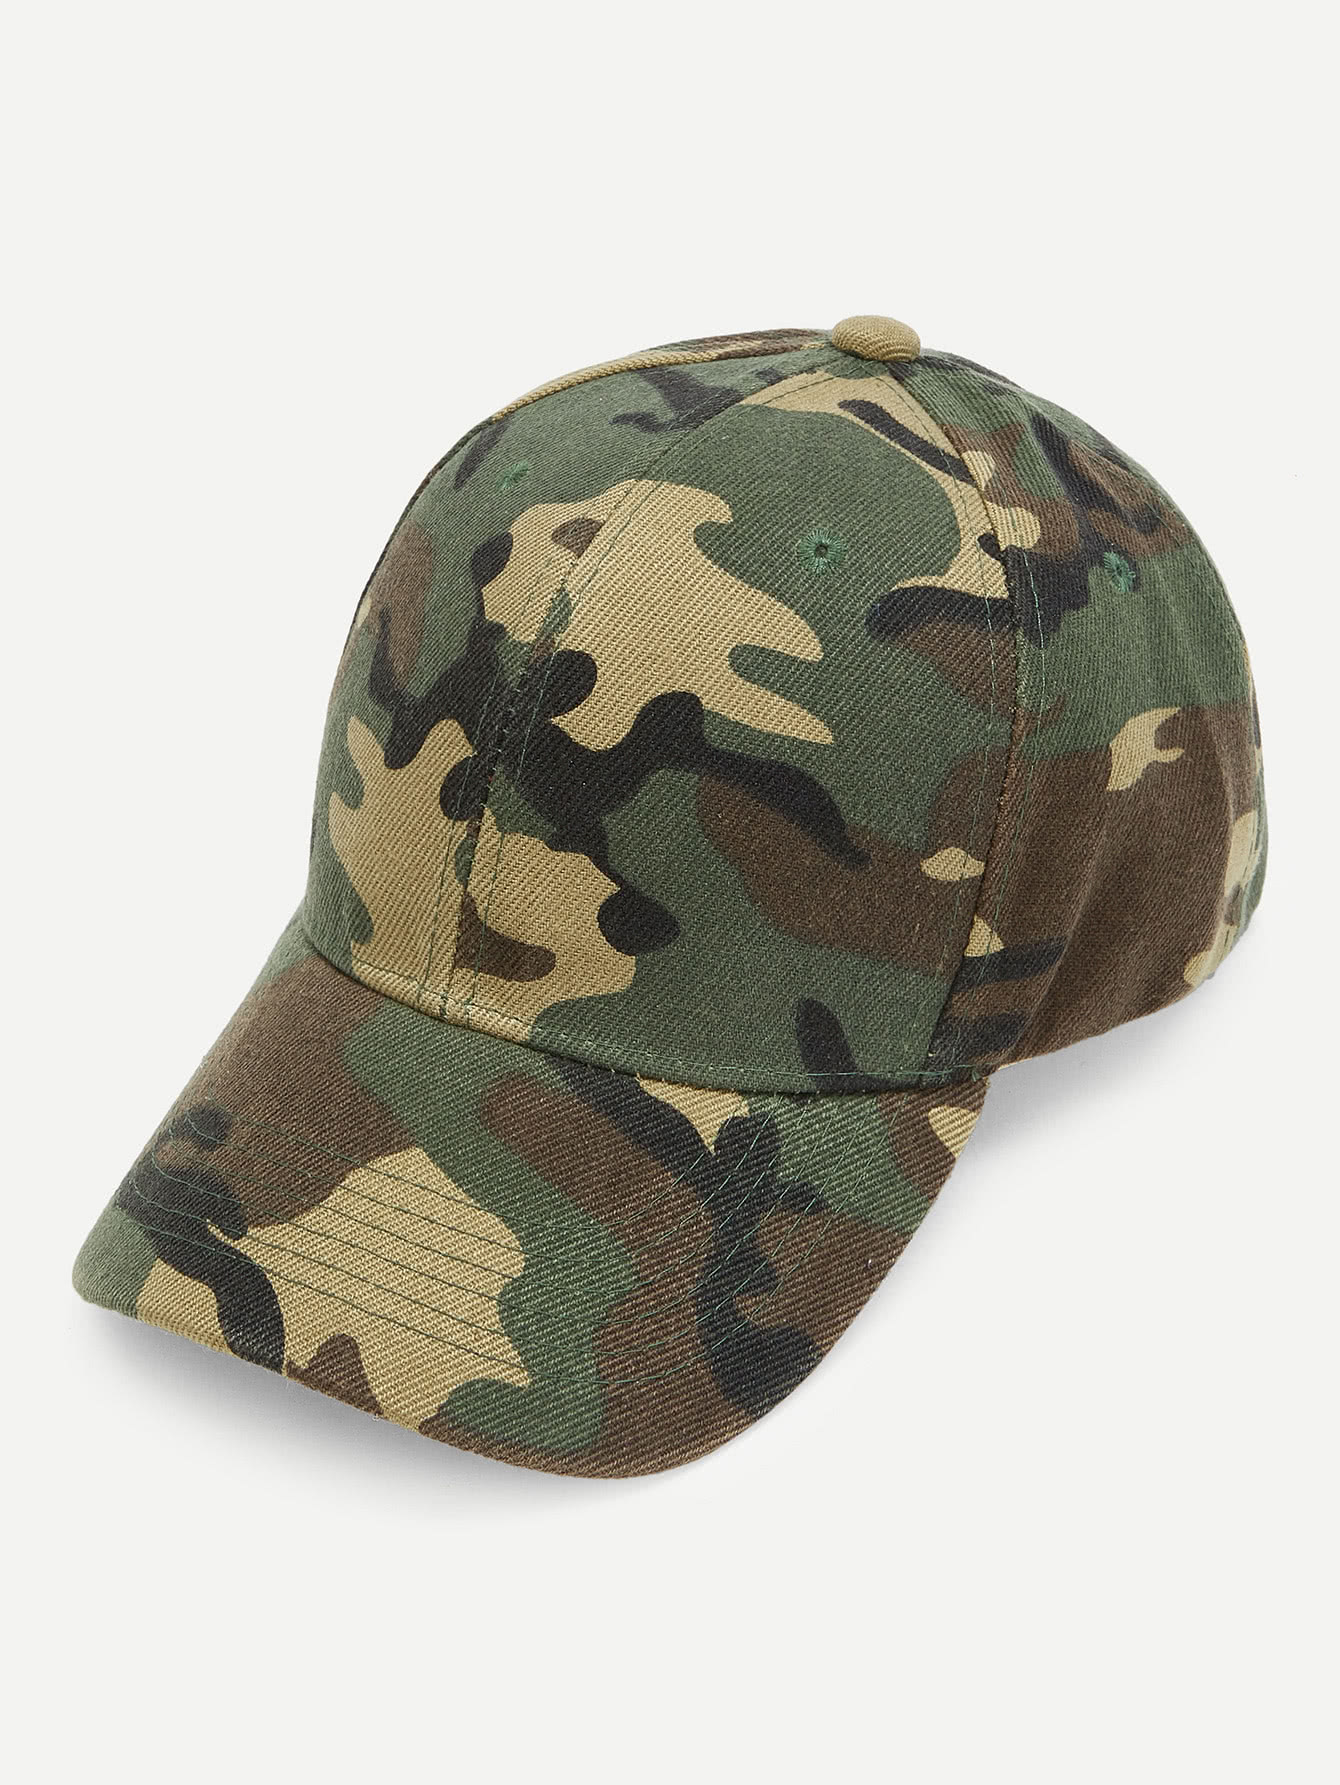 Camouflage Baseball Cap men women coconut palm baseball cap army camo cap baseball casquette camouflage hats for hunting fishing outdoor